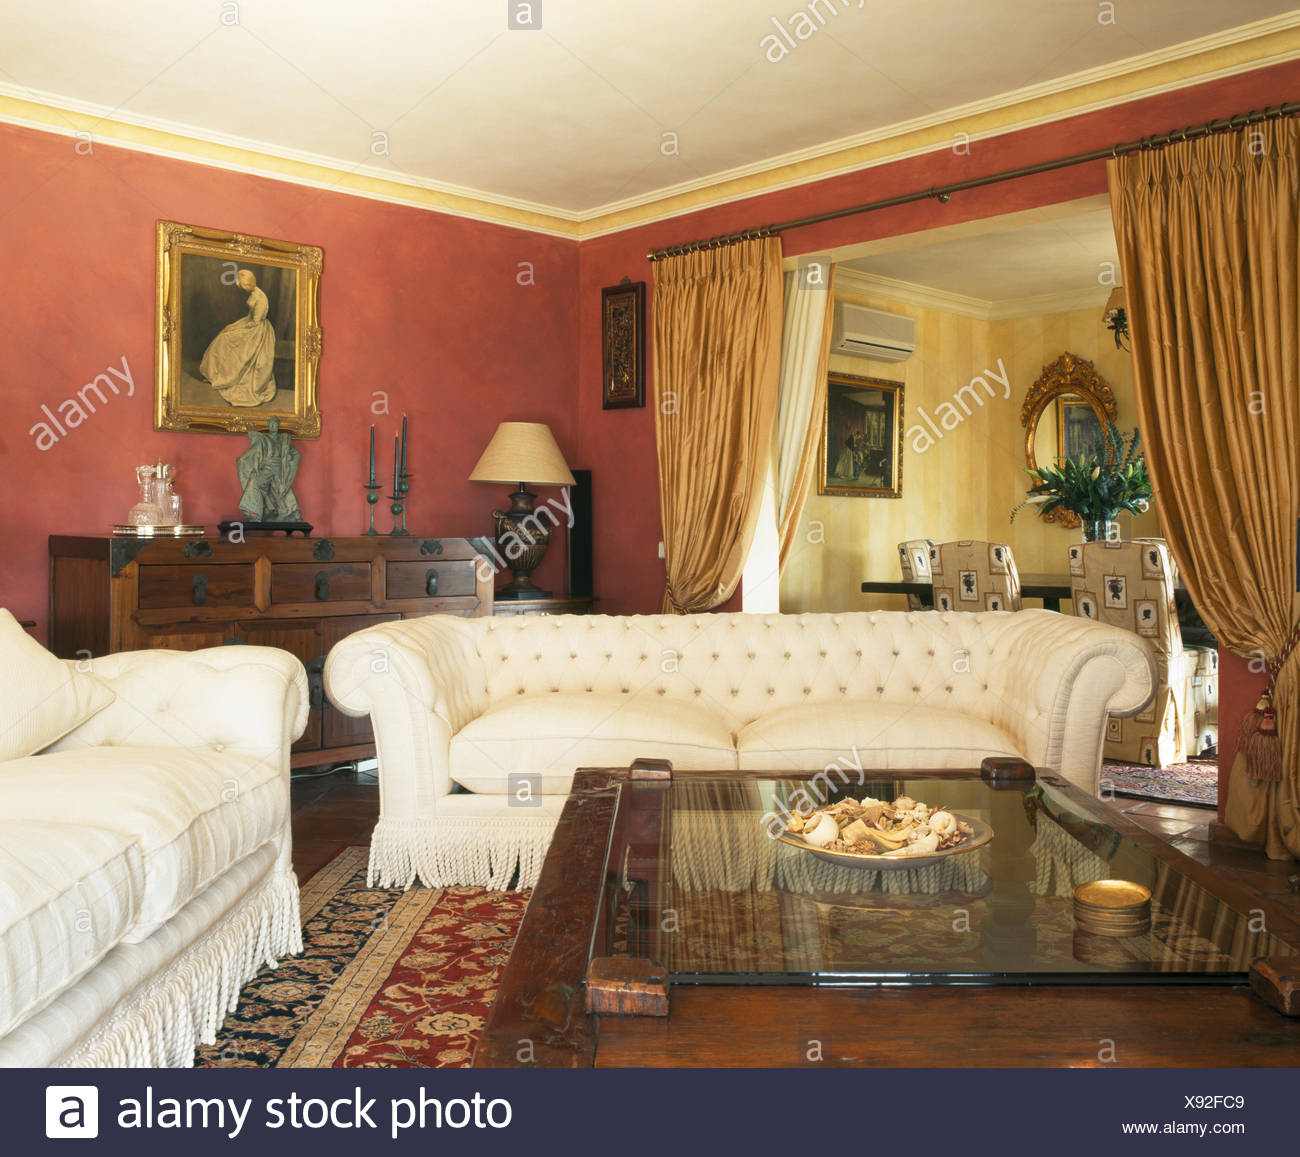 White Sofas And Glass Topped Coffee Table In Red Spanish Living Room With Silk Drapes On Doorway To Dining Room Stock Photo Alamy